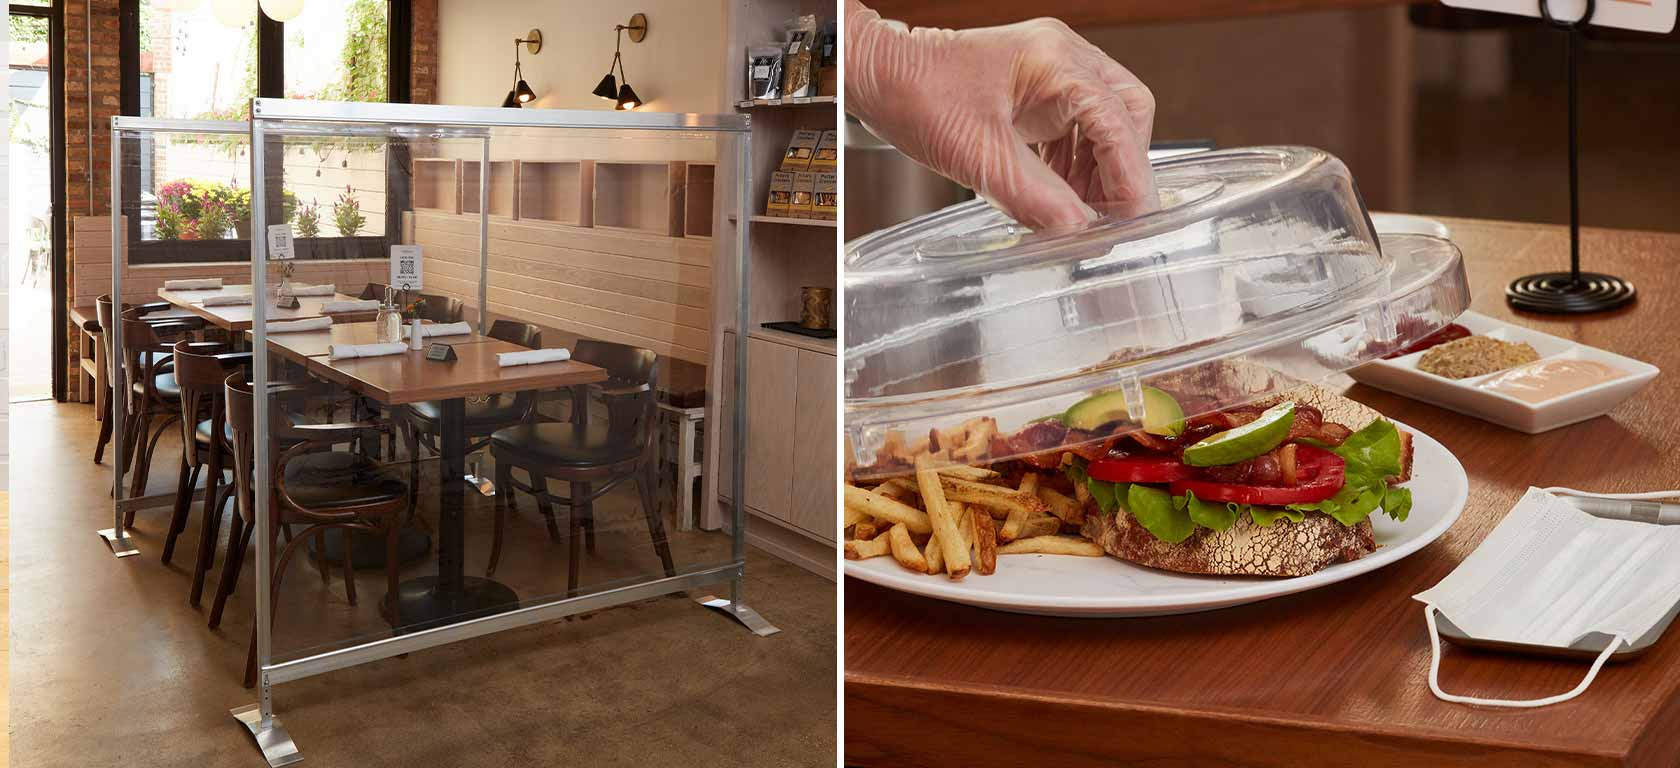 On the left, plexiglass dividers between tables, and on the right a gloved hand uncovers food to protect it.